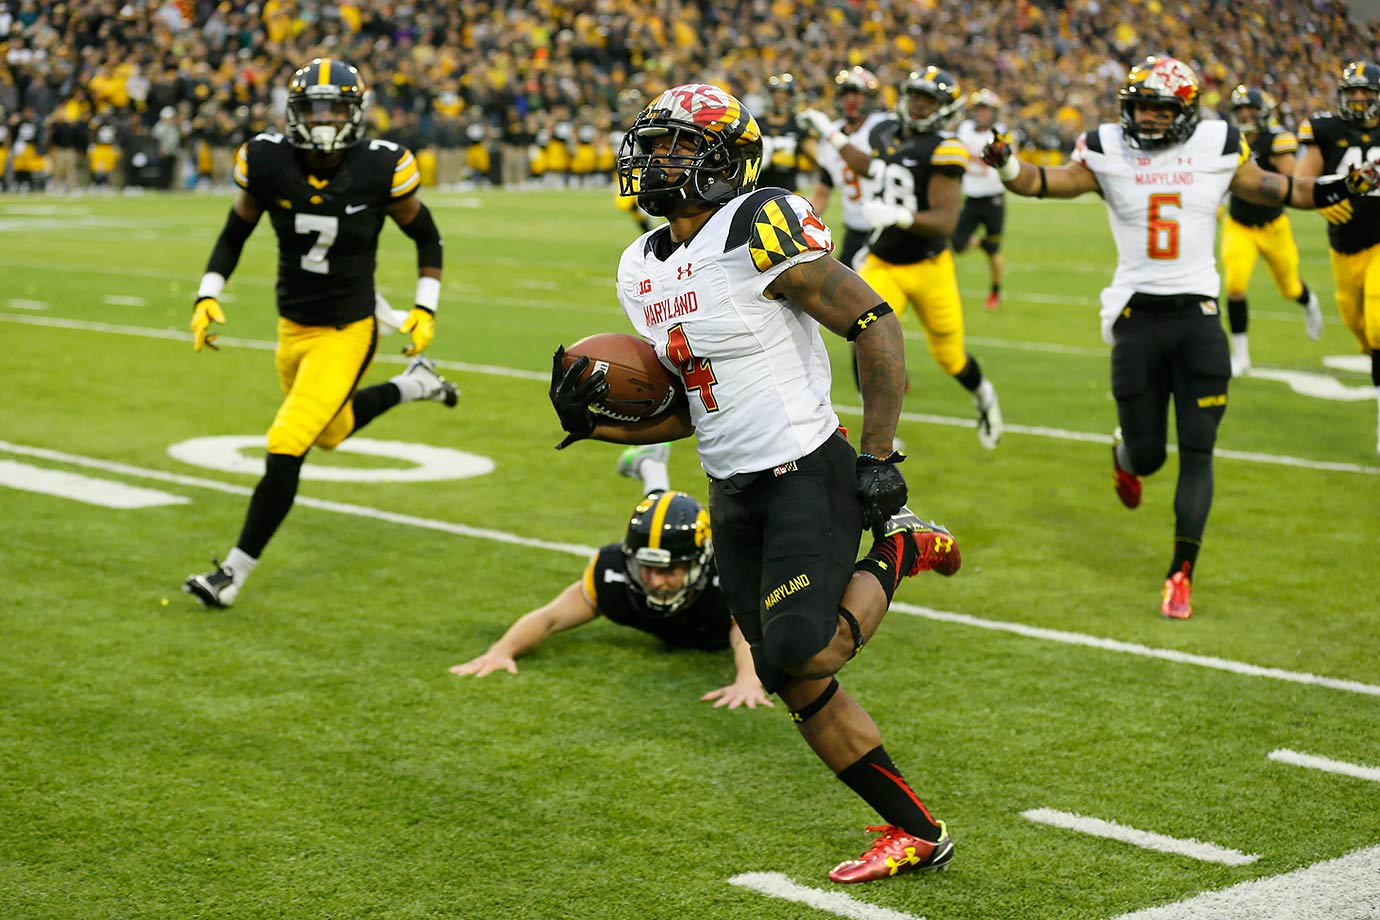 The versatile senior from Maryland holds several Terrapins records, including most interception return yards in a season and single-game punt and kickoff return yards. He spent most of his time as a cornerback and returner, but he also started at wide receiver against Wisconsin. Big Ten coaches listed him first-team All-Big Ten as both a corner and returner, and he was an All-America punt returner.